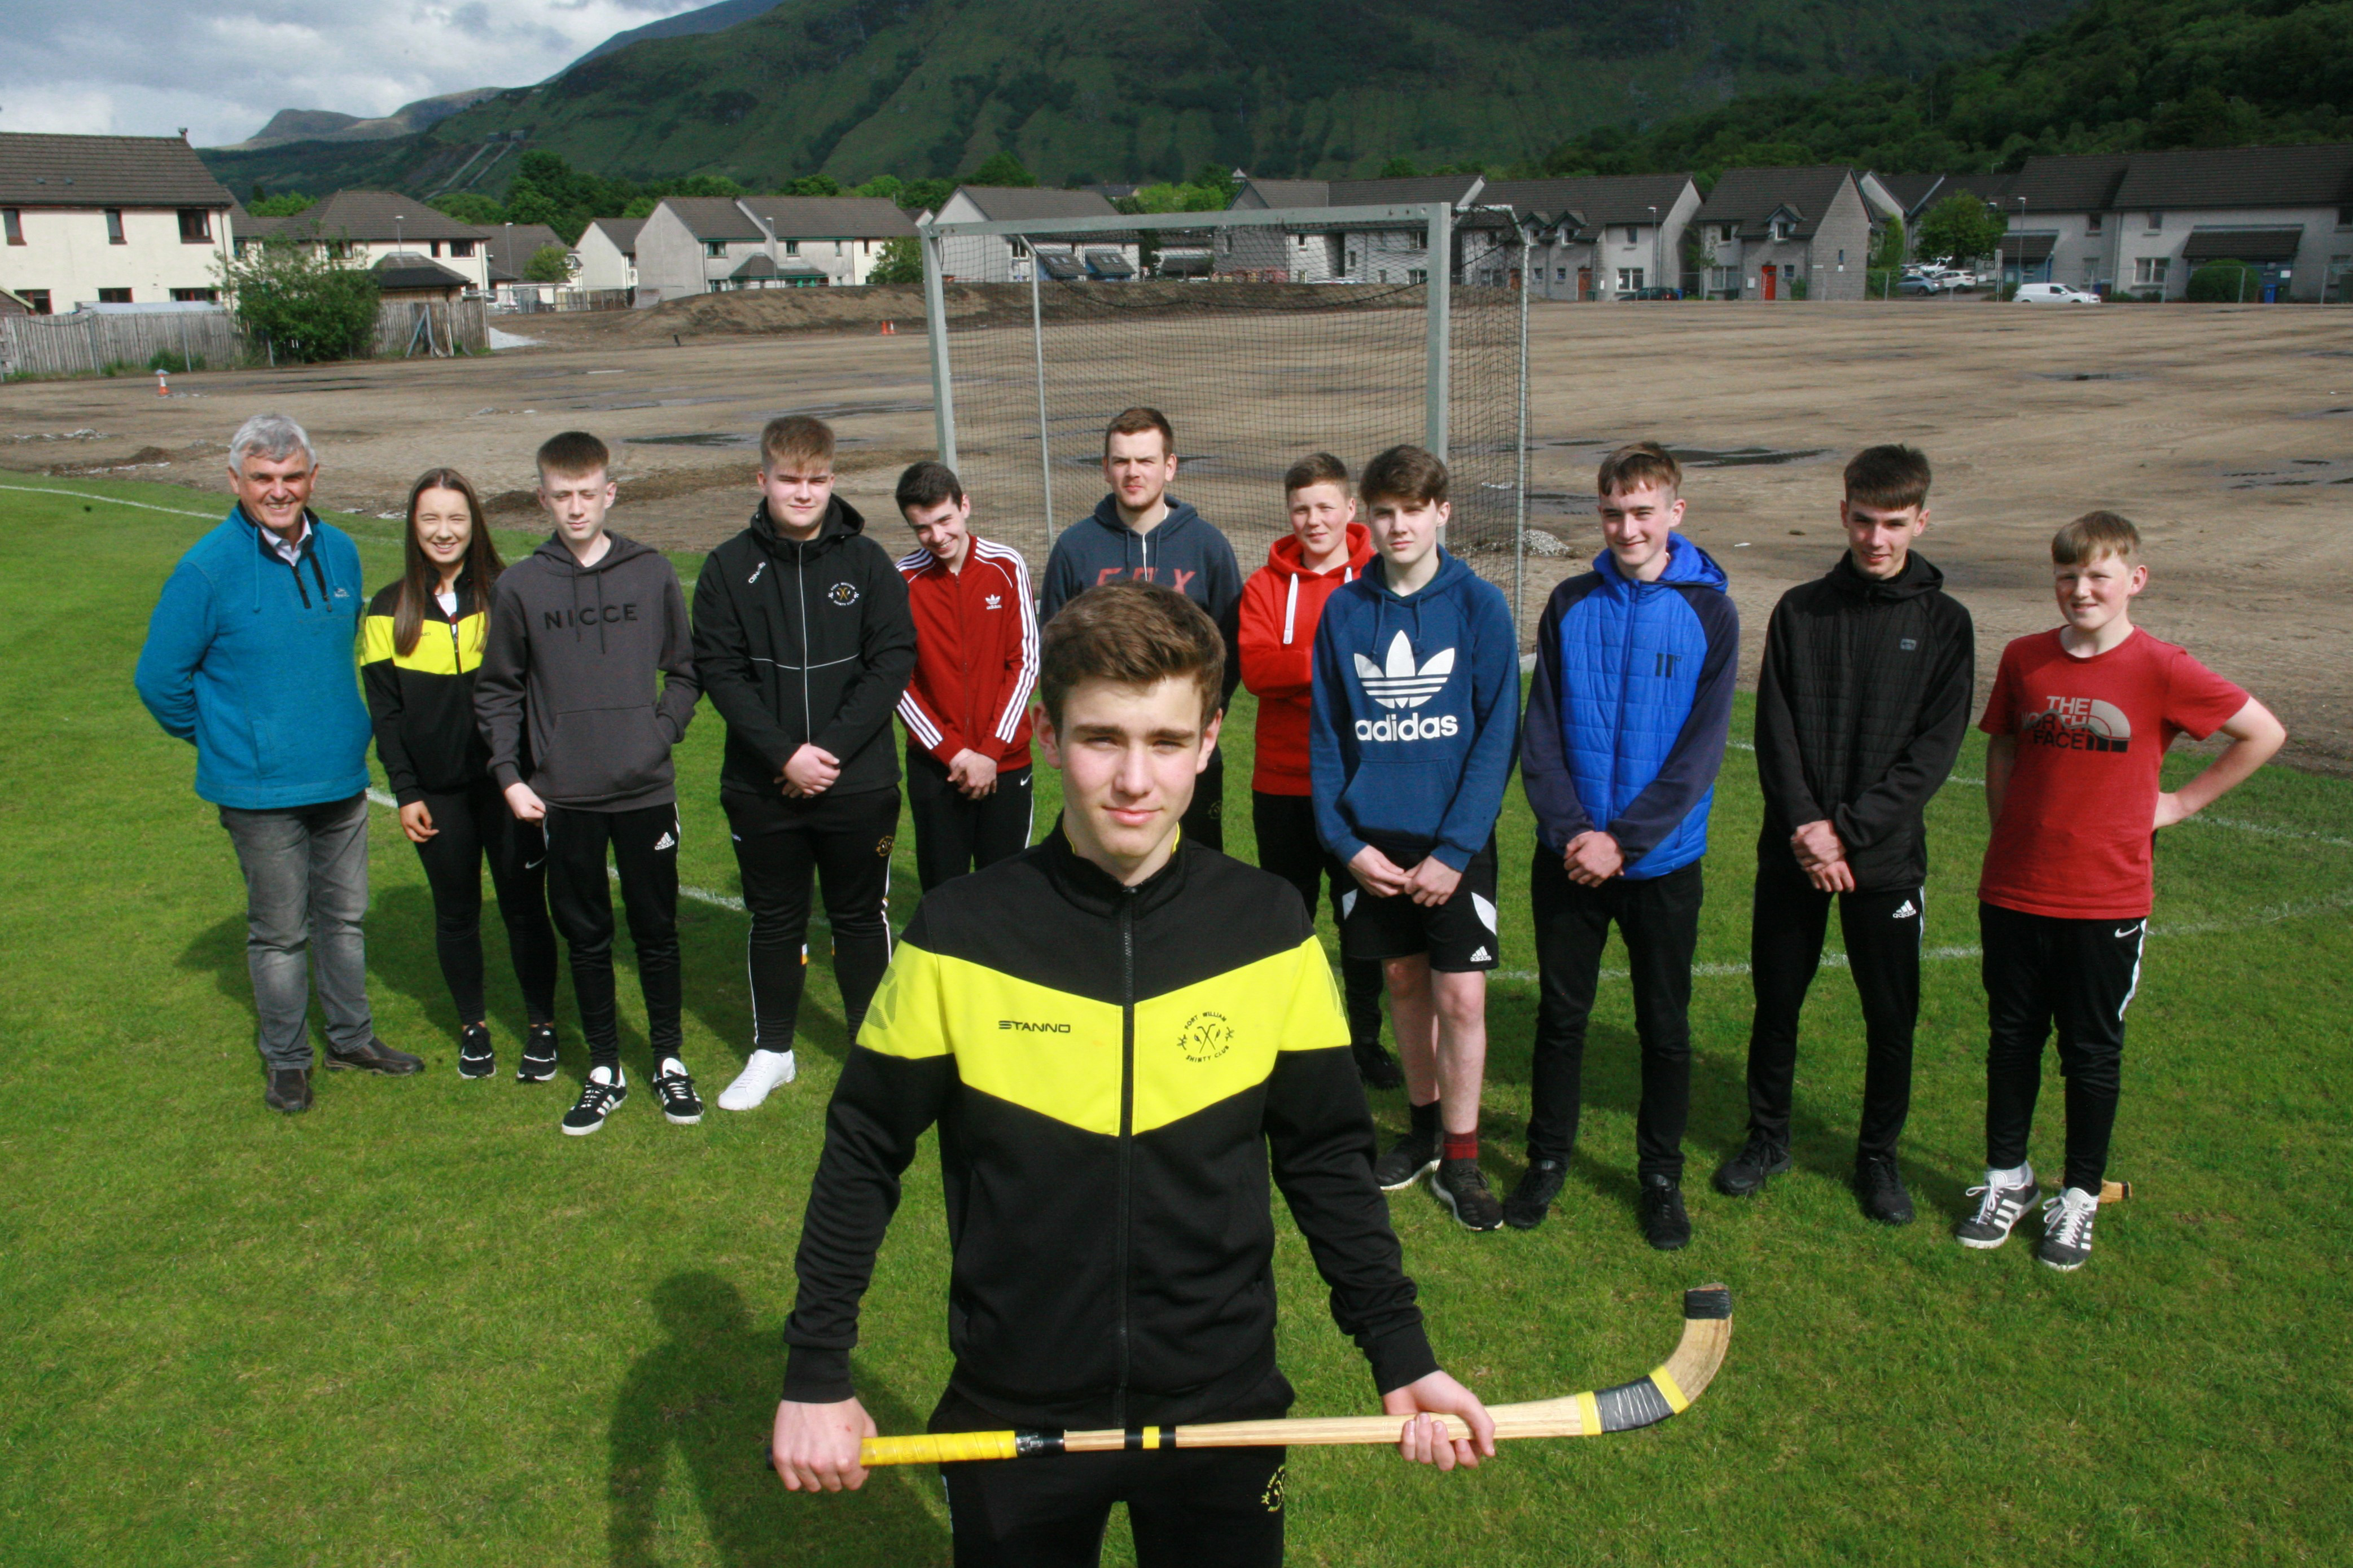 Richard Shaw Captain with the under 17s team of Fort William Shinty Club and officials